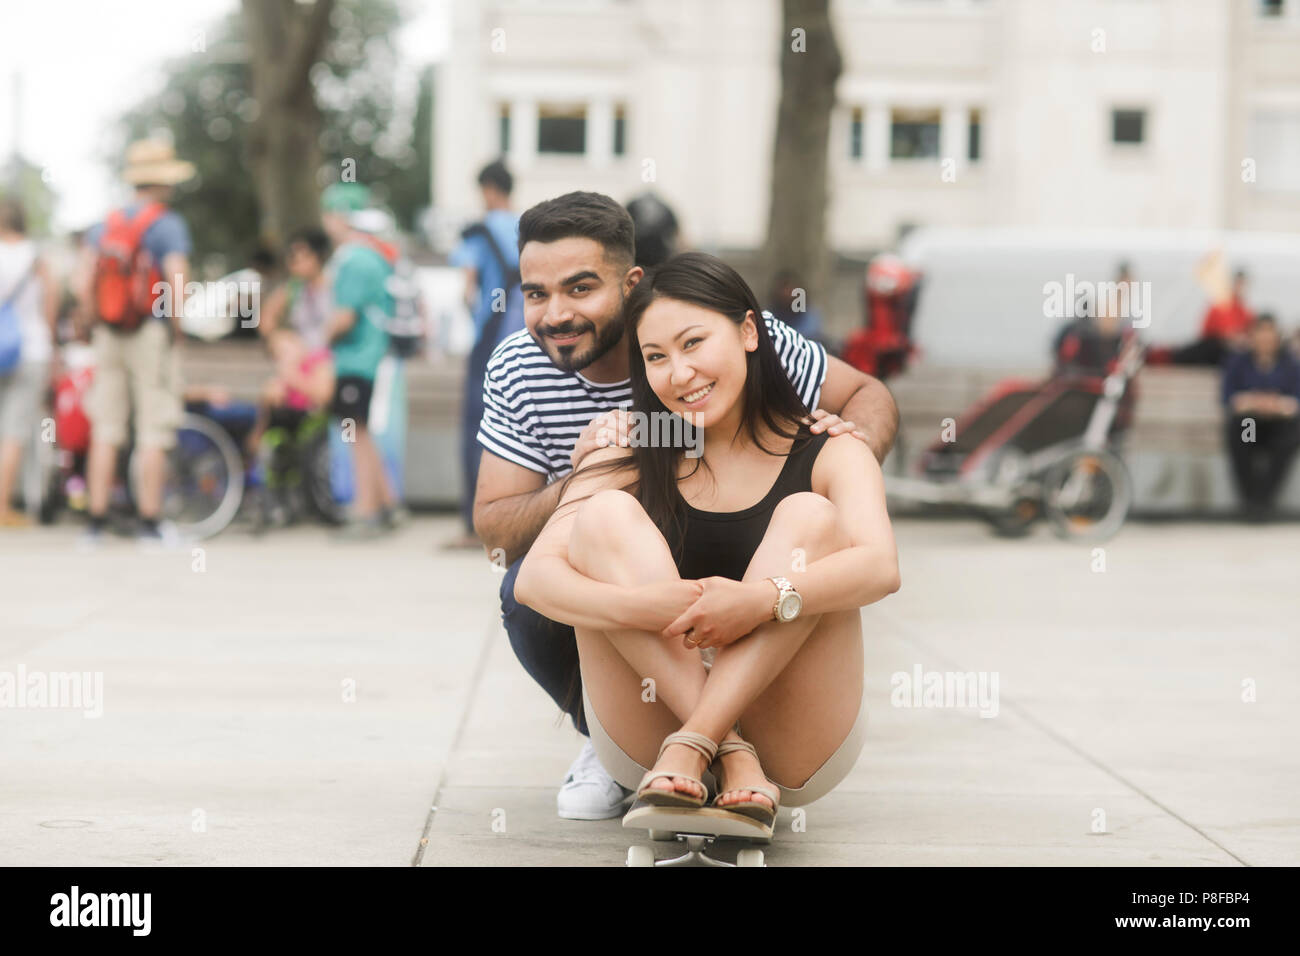 Smiling couple sitting on a skateboard in a city square Stock Photo